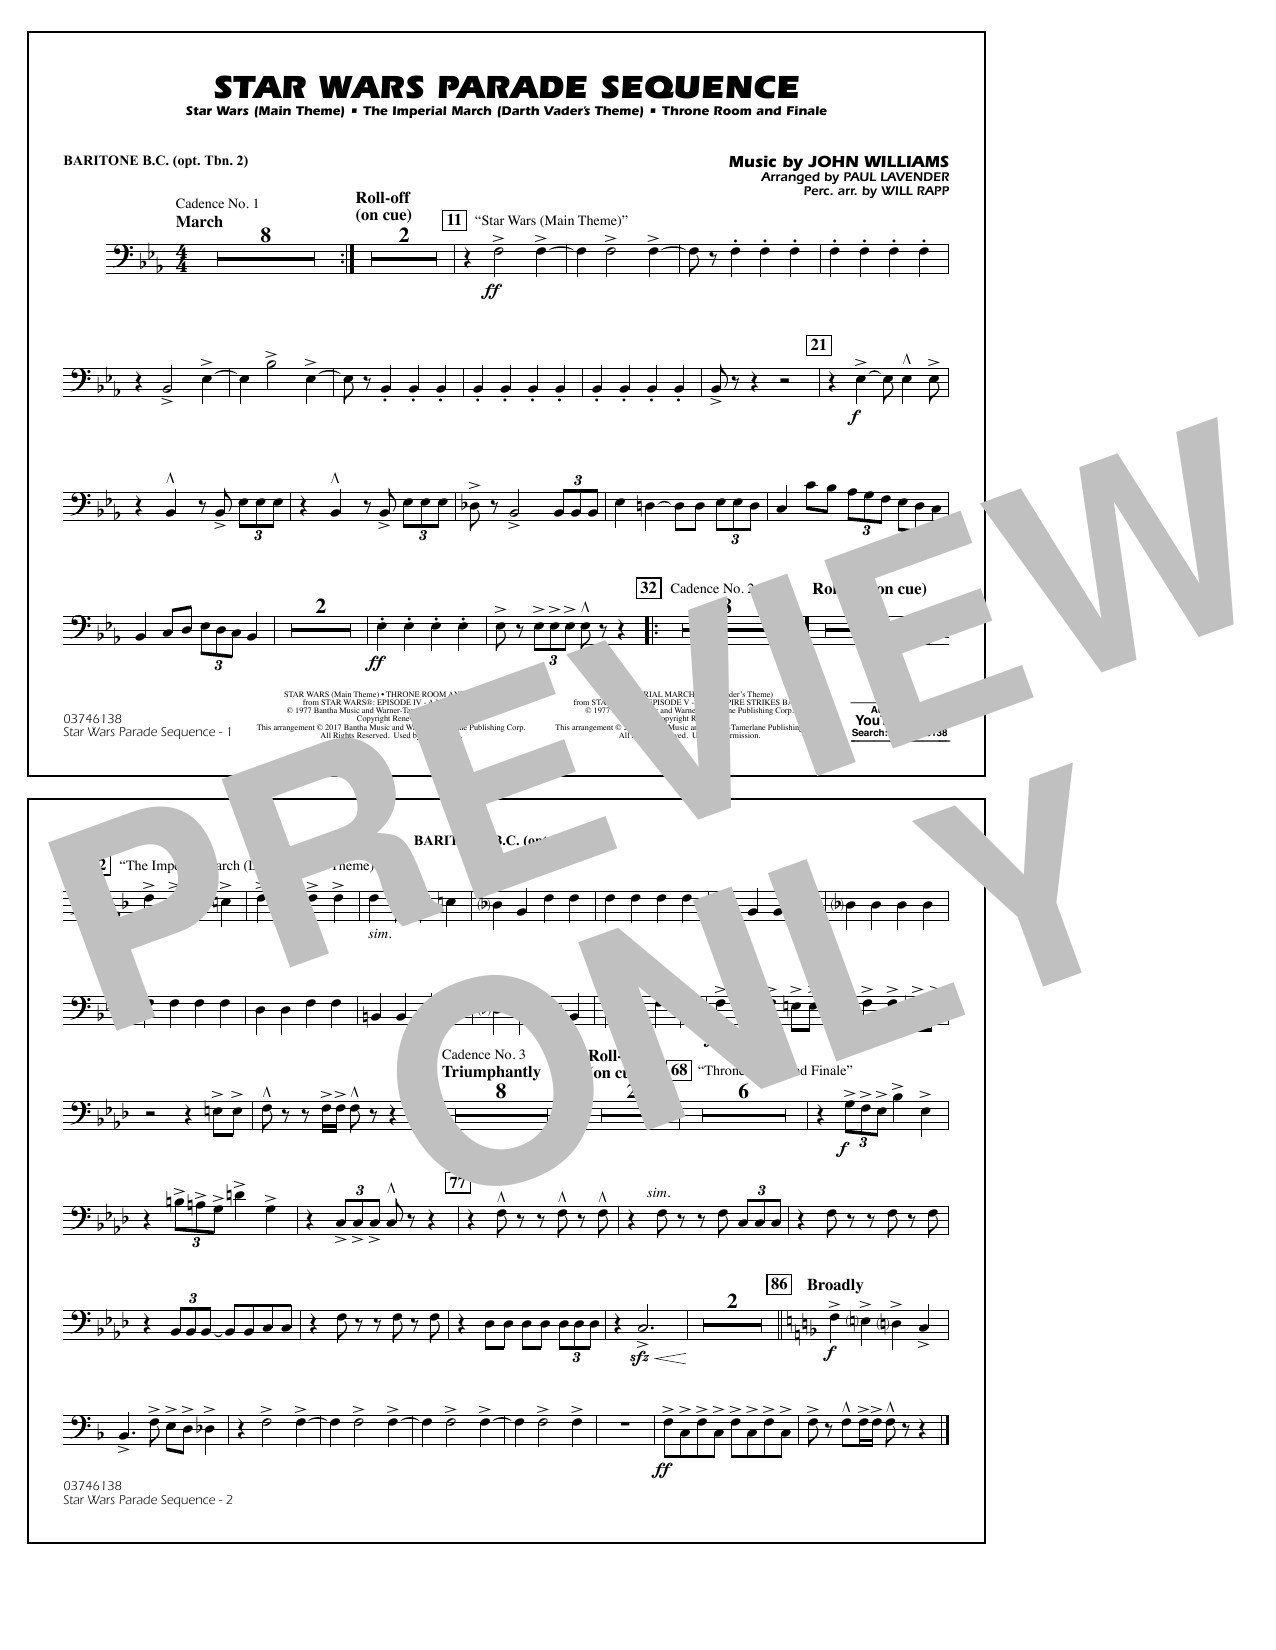 Paul Lavender Star Wars Parade Sequence - Baritone B.C. (Opt. Tbn. 2) sheet music preview music notes and score for Marching Band including 1 page(s)